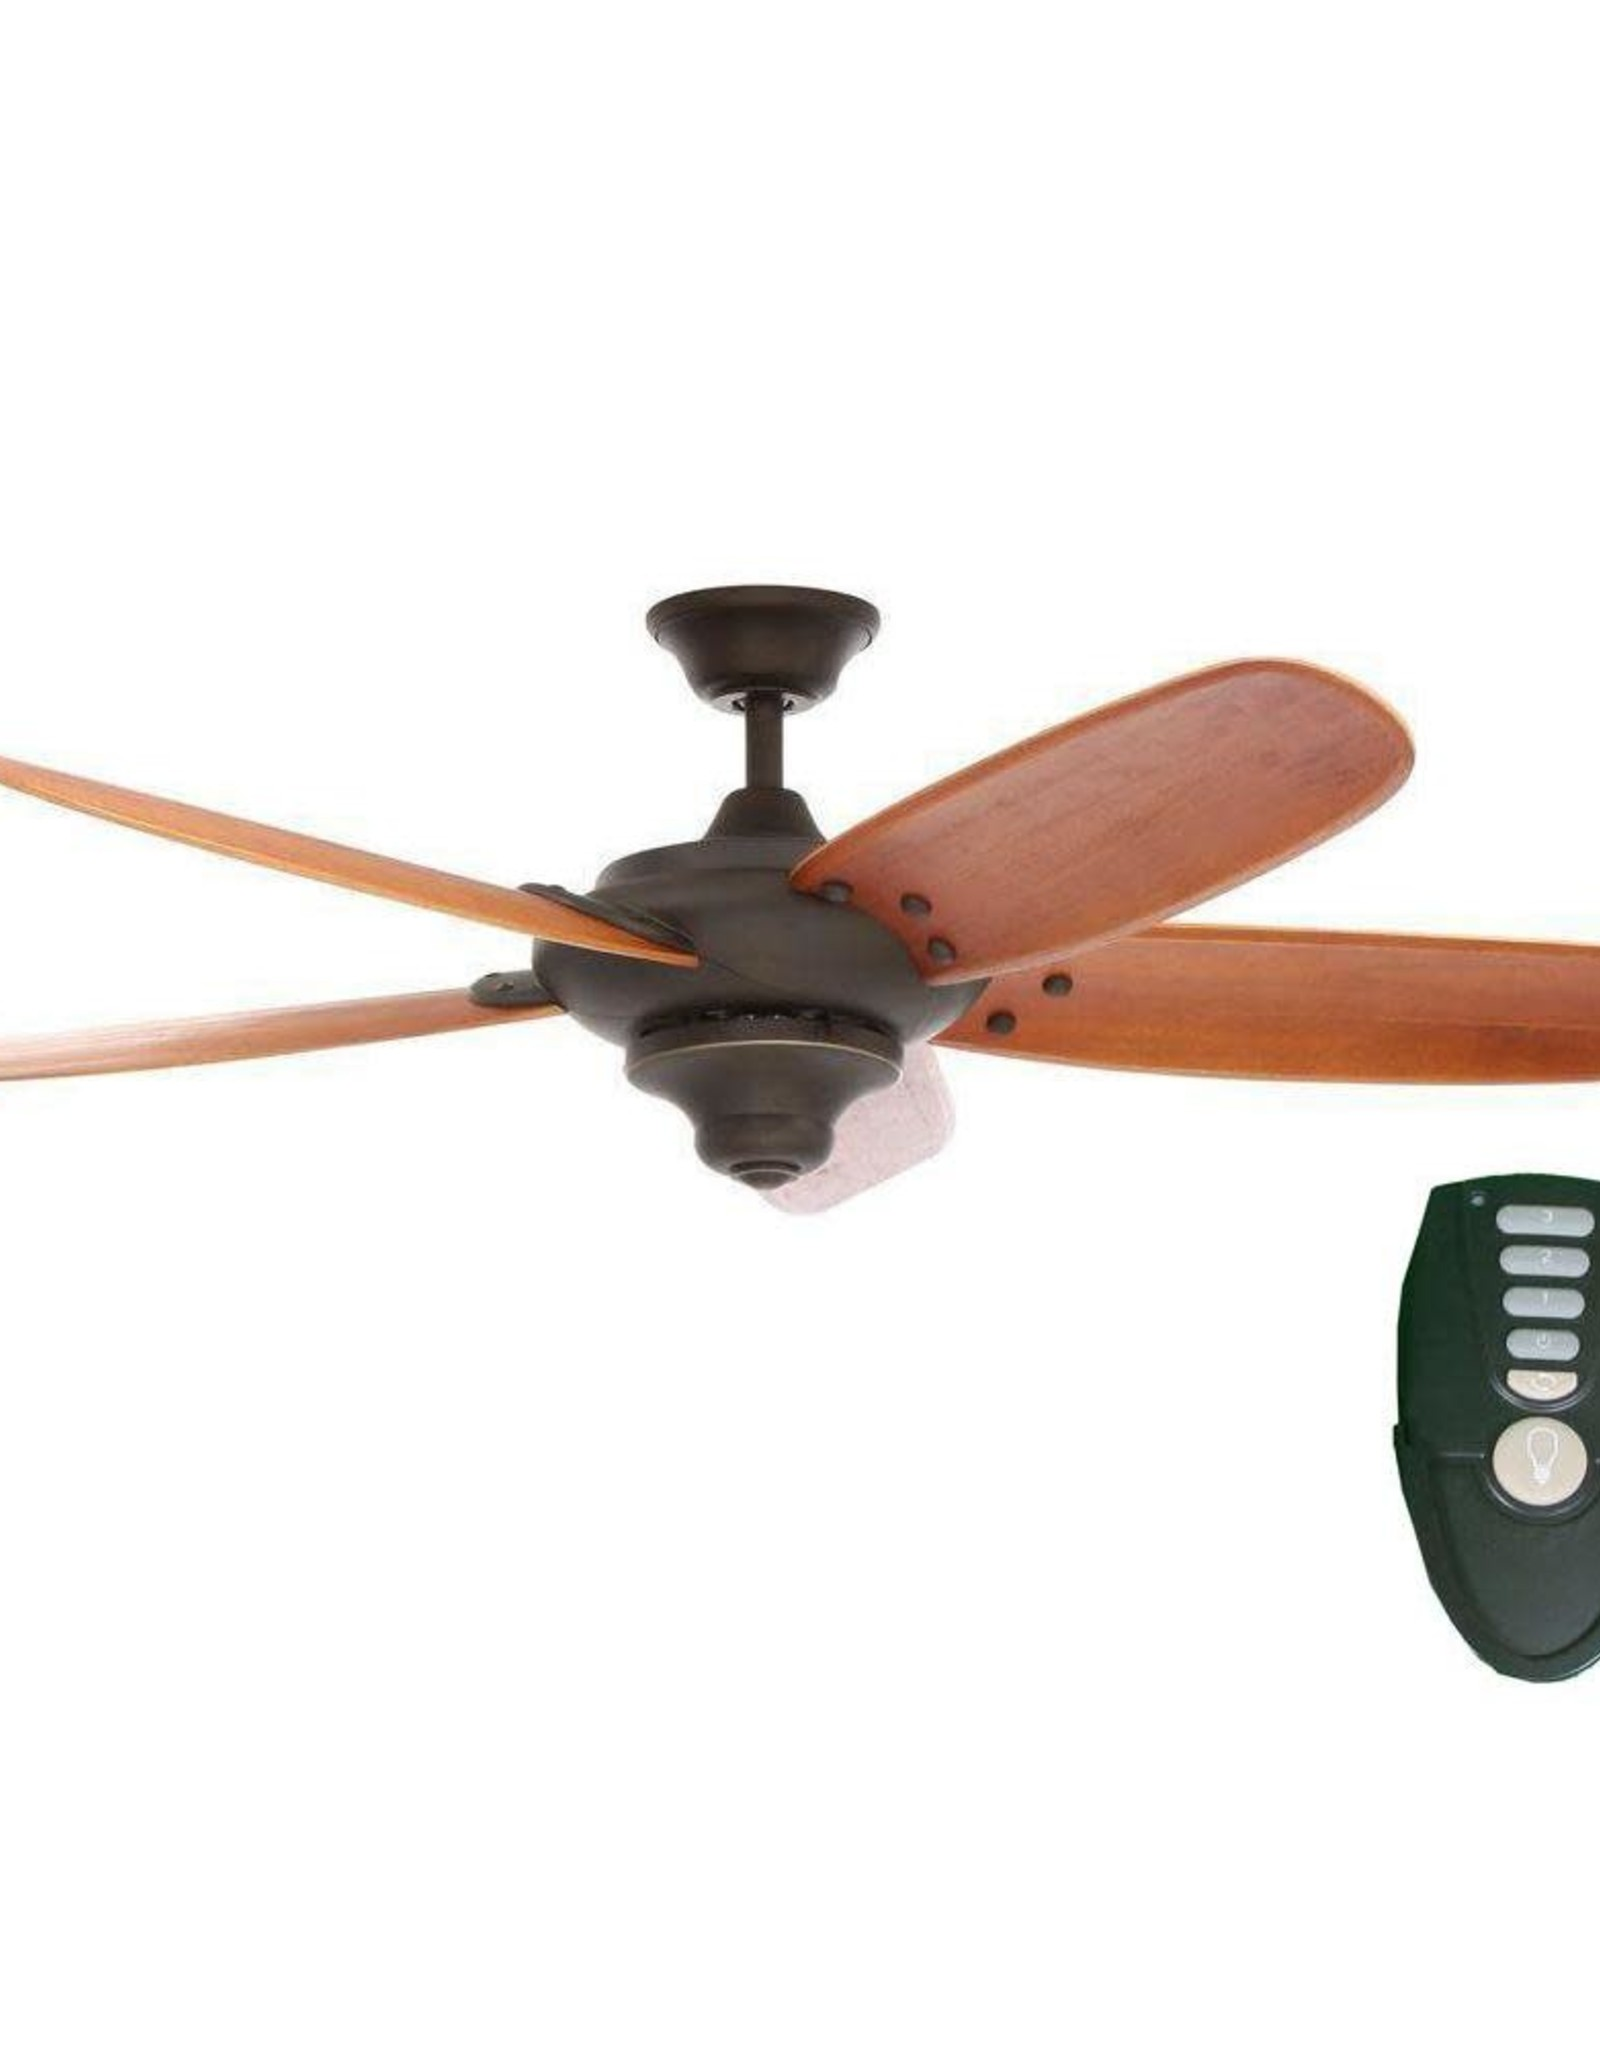 Home Decorators Collection Altura 56 in. Indoor Oil Rubbed Bronze Ceiling Fan with Remote Control